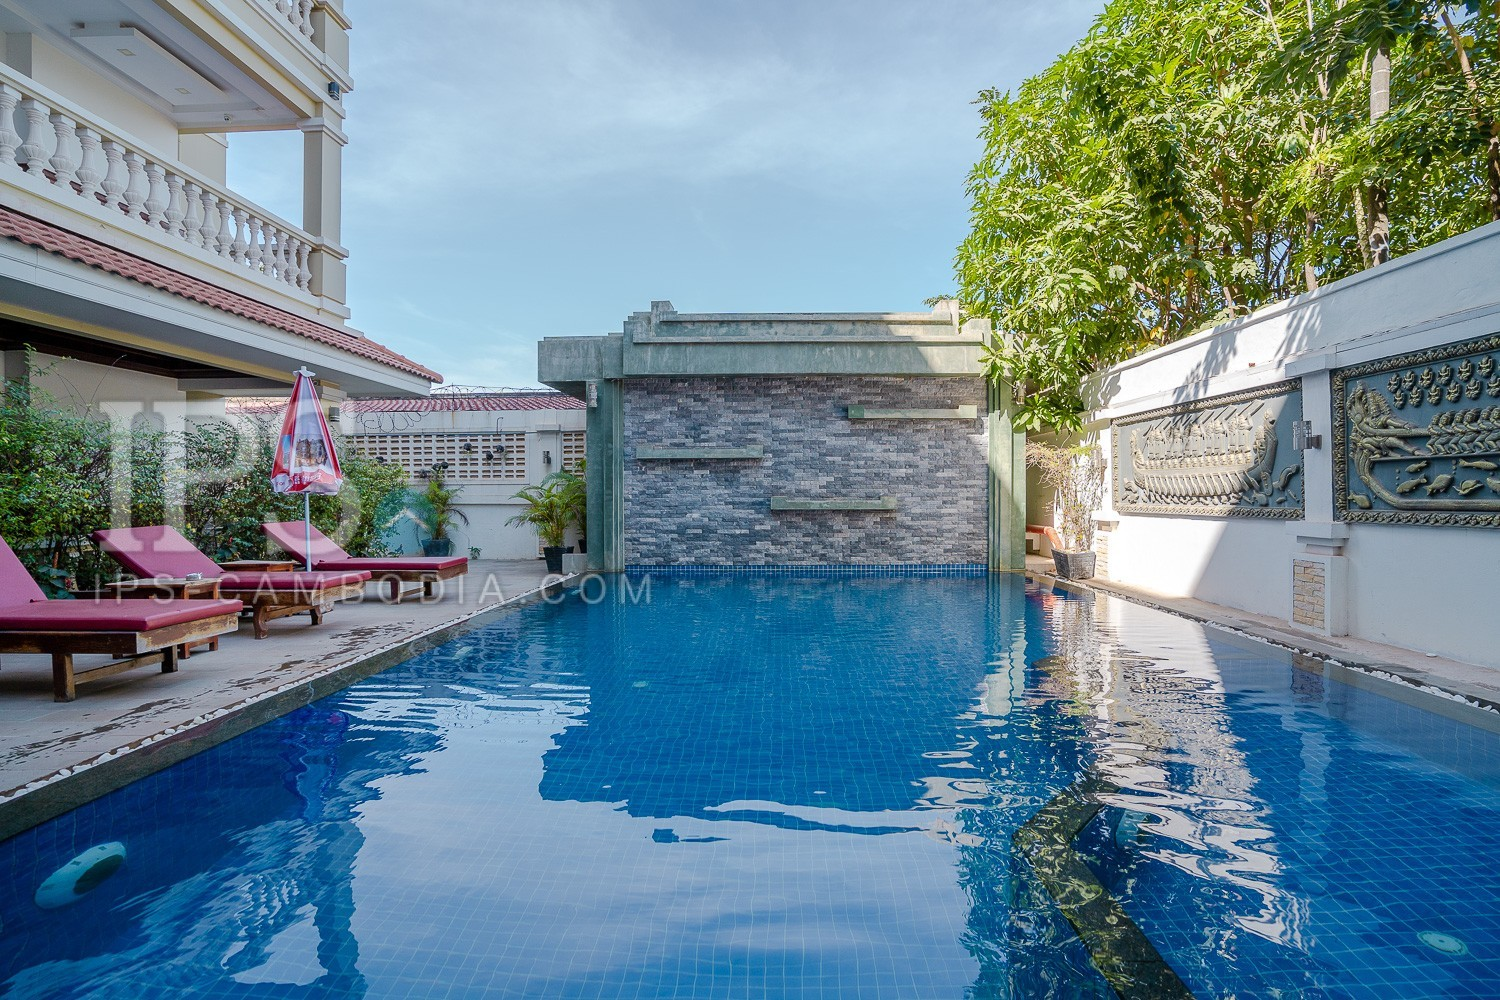 1 Bedroom Apartment for Rent in Svay Dungkum